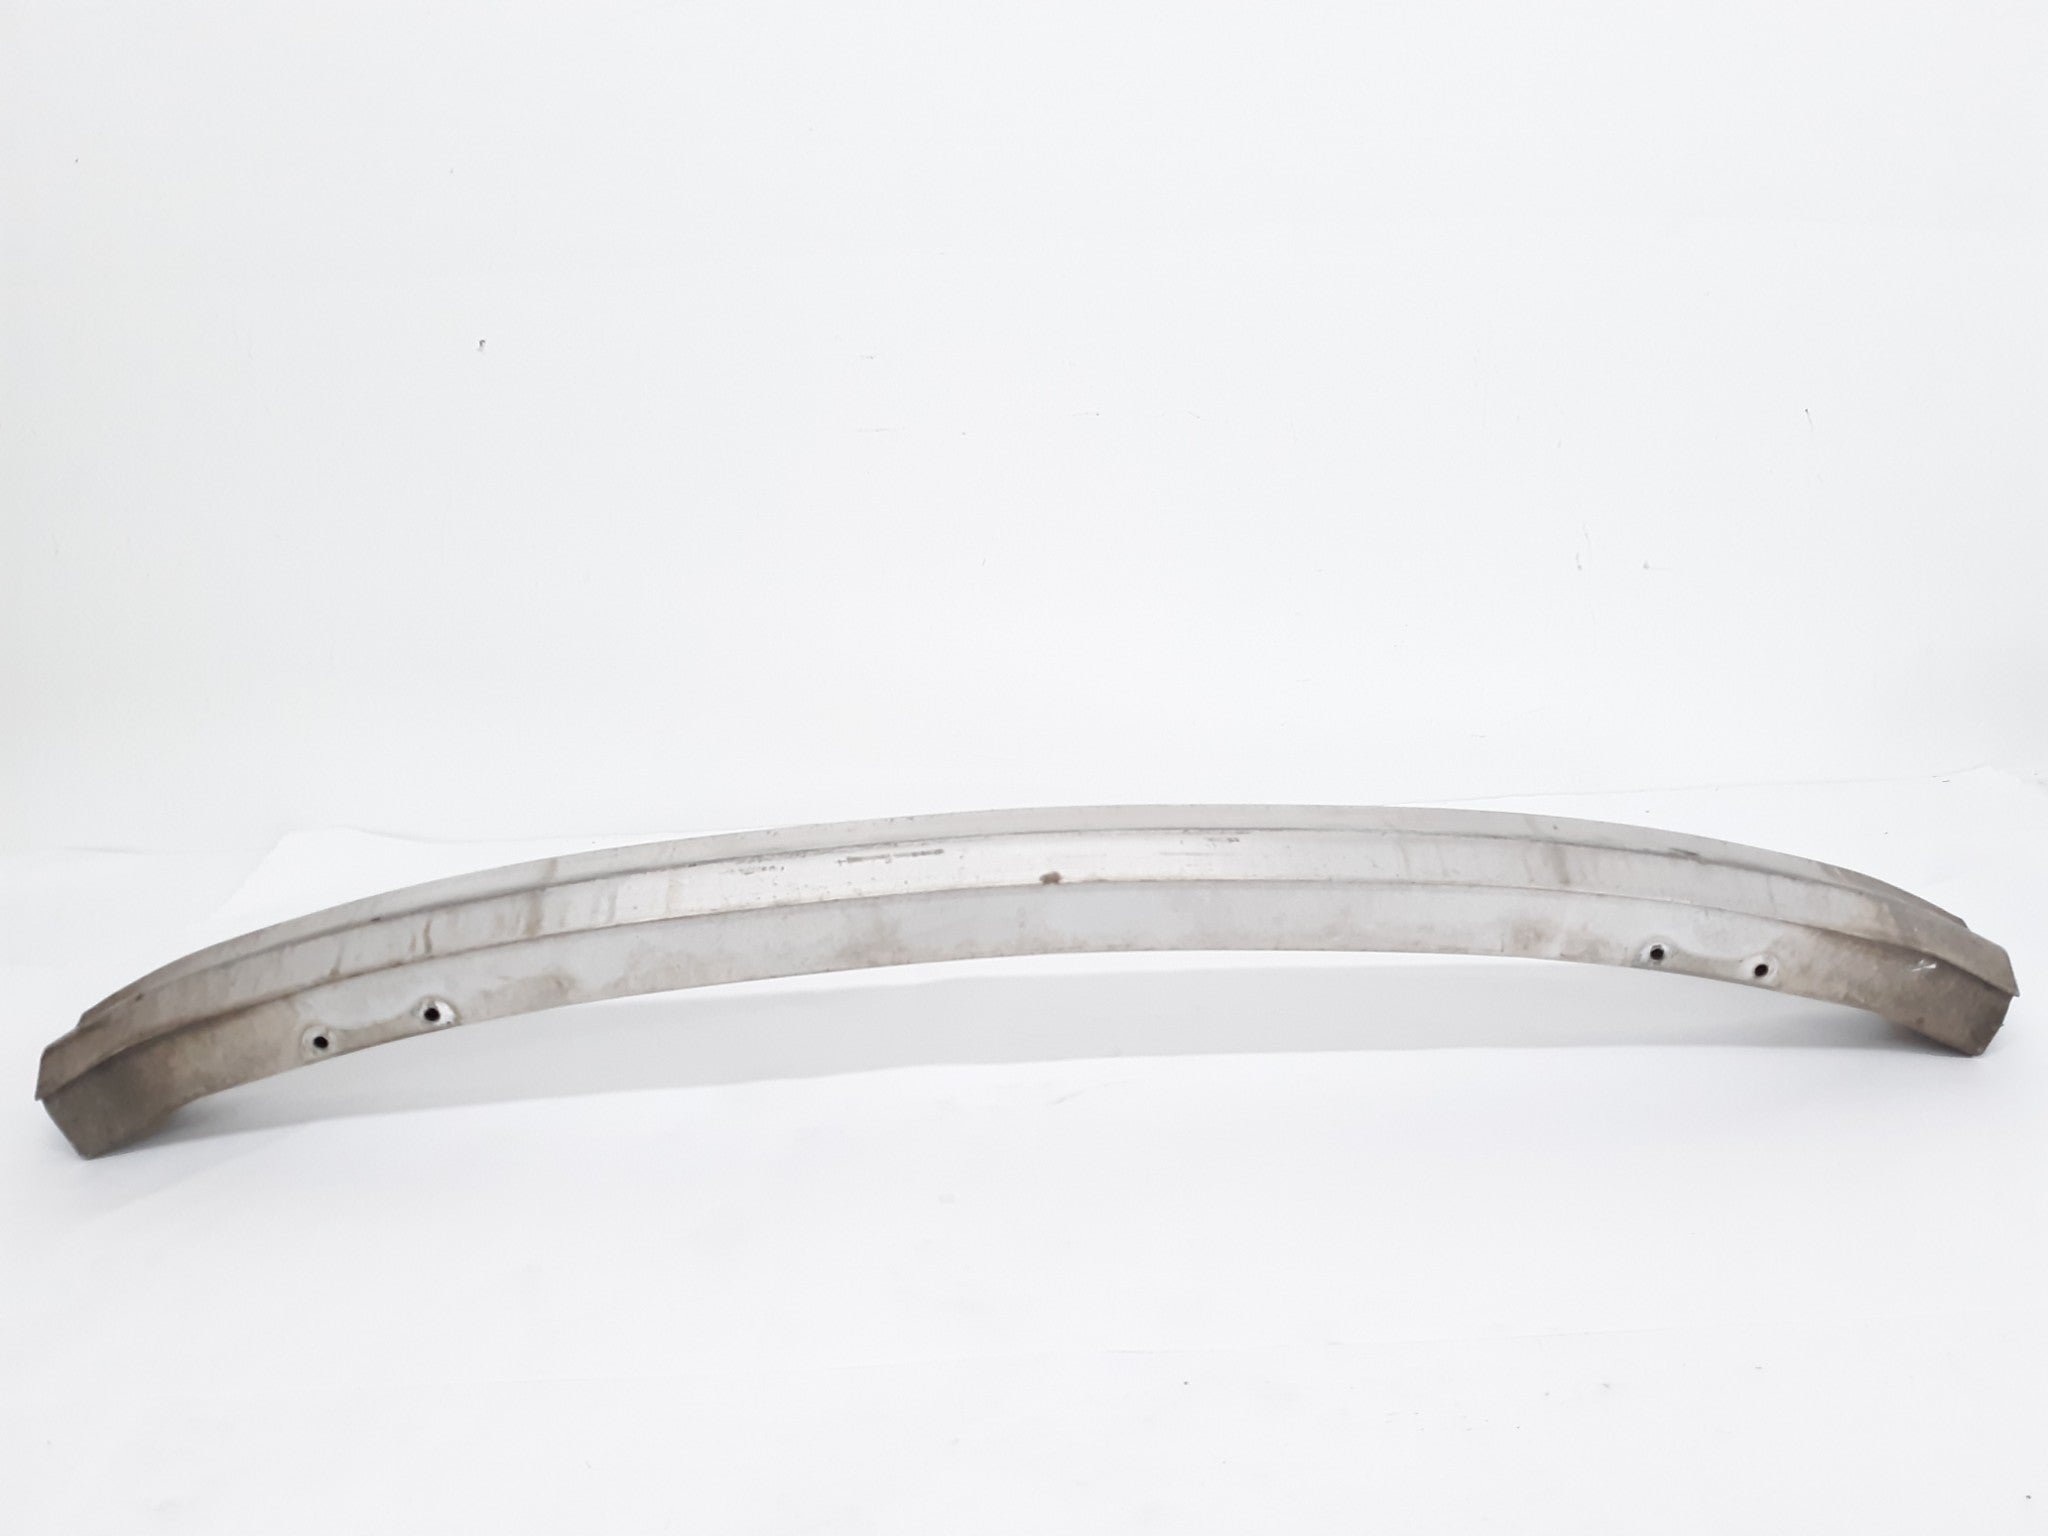 06-12 MERCEDES BENZ W164 GL ML CLASS REAR BUMPER REINFORCEMENT REBAR BAR OEM - Click Receive Auto Parts